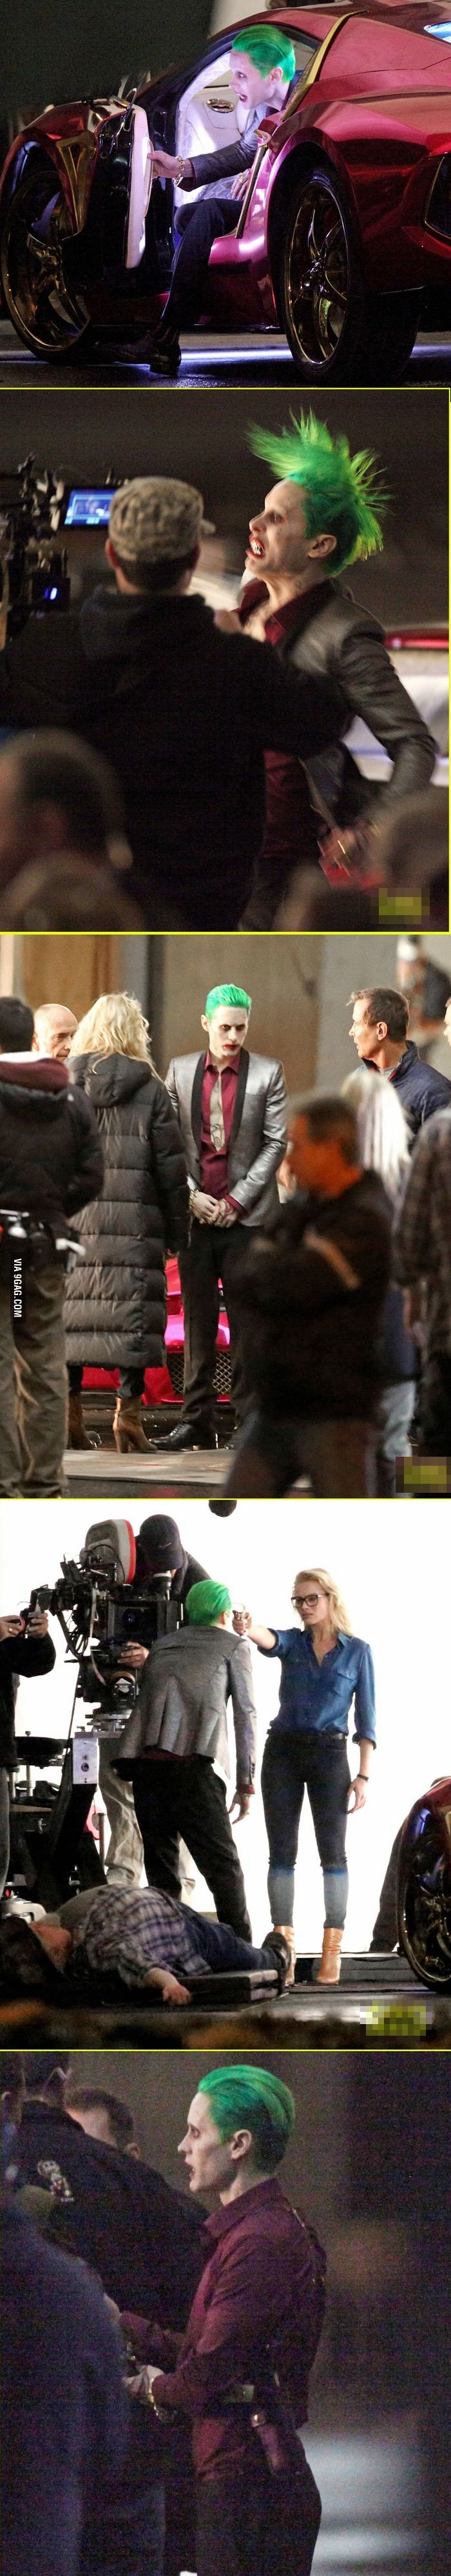 Dear Jared Leto, a lot of fans are giving crap about these photos, but i am REALLY looking forward to your version of Joker. =) I hope the movie will be GREAT!